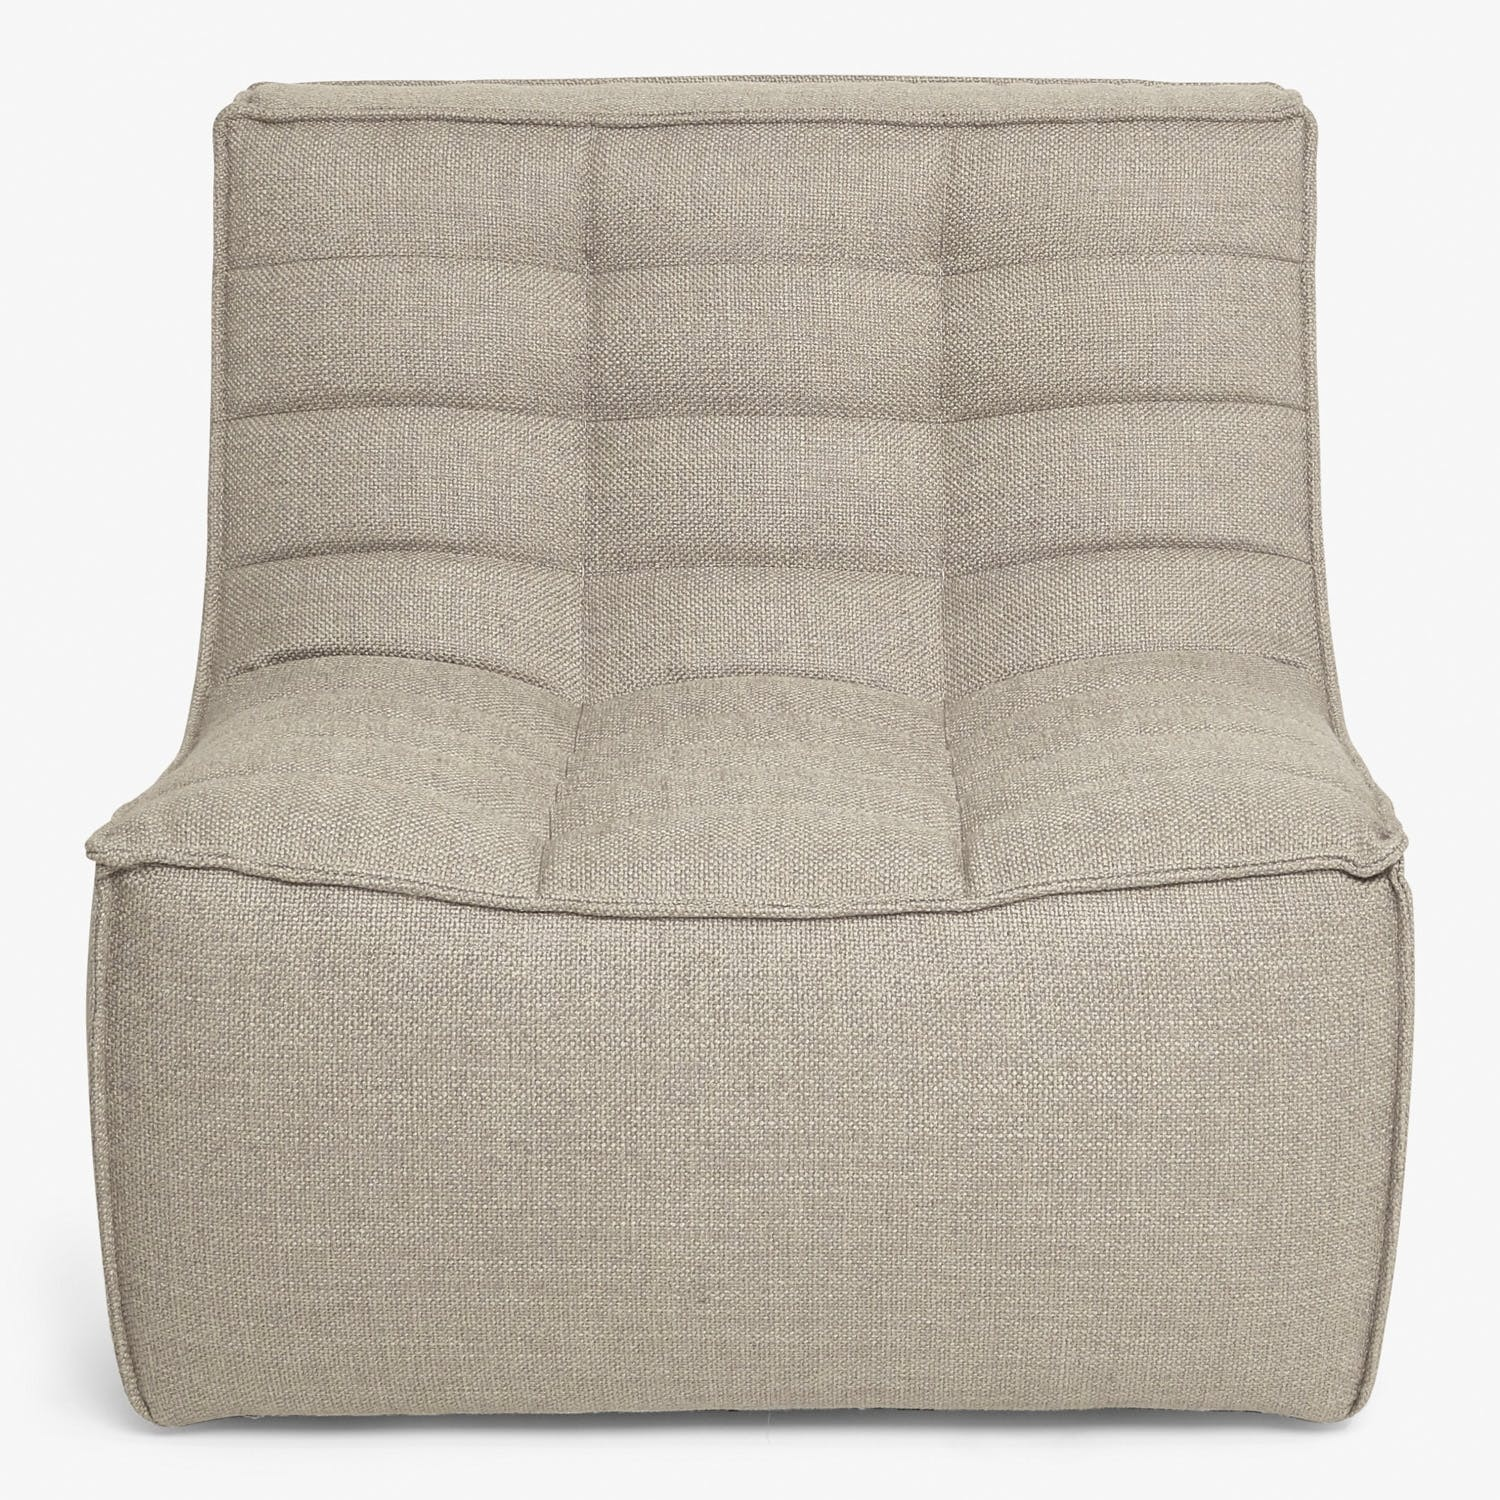 Ethnicraft Sectional Armless Chair